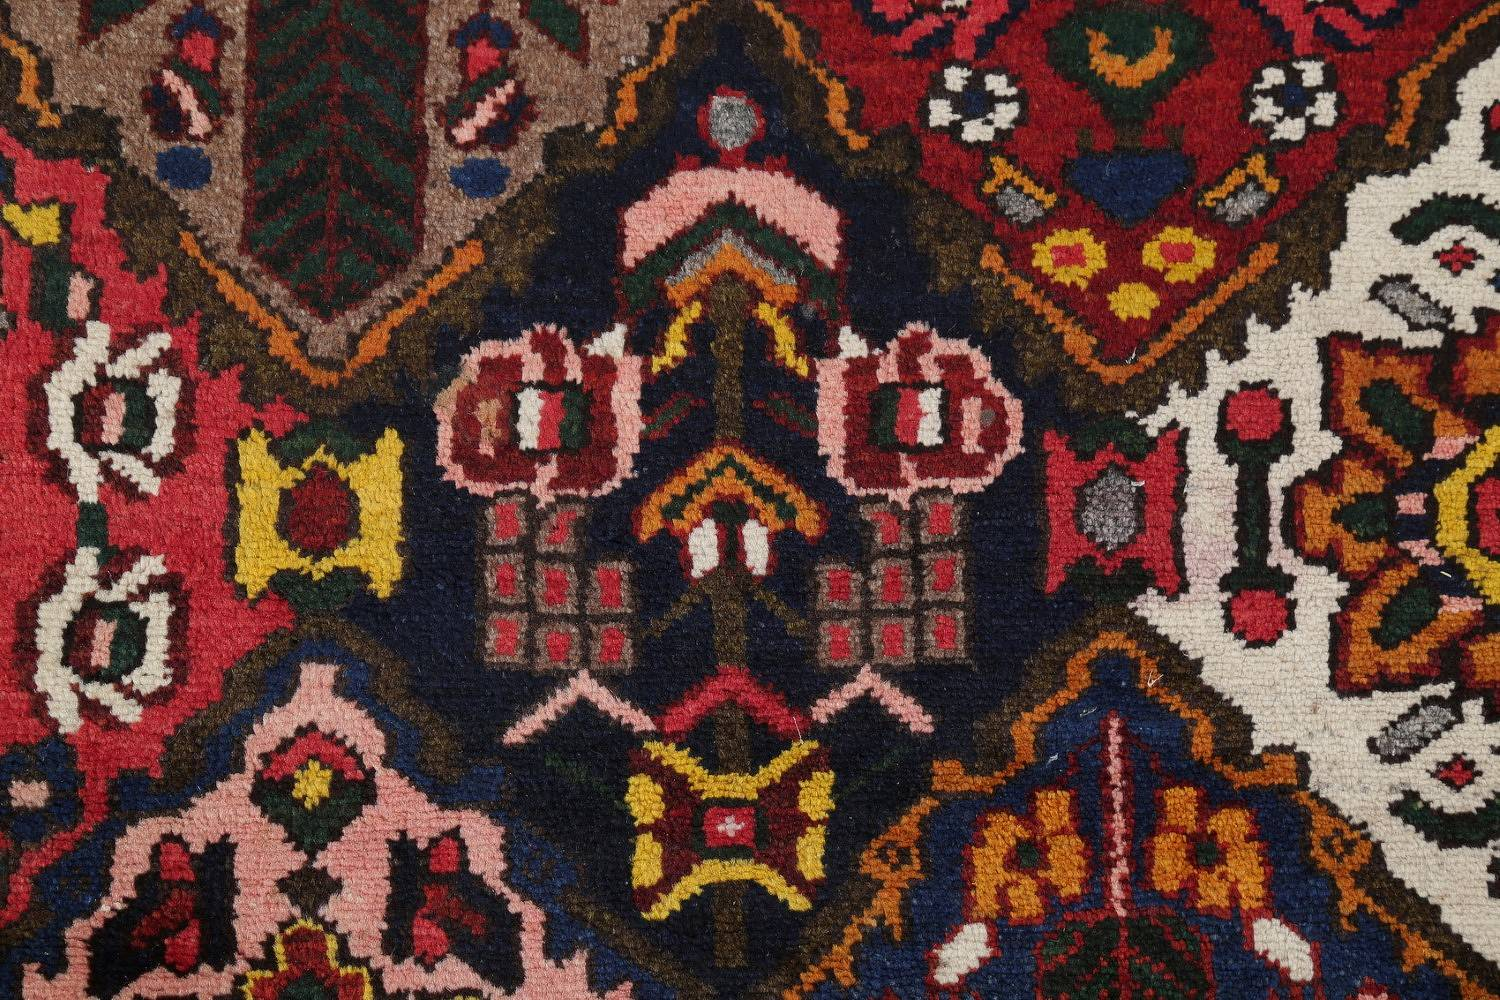 Antique Vegetable Dye Bakhtiari Persian Hand-Knotted Area Rug 7x12 image 9